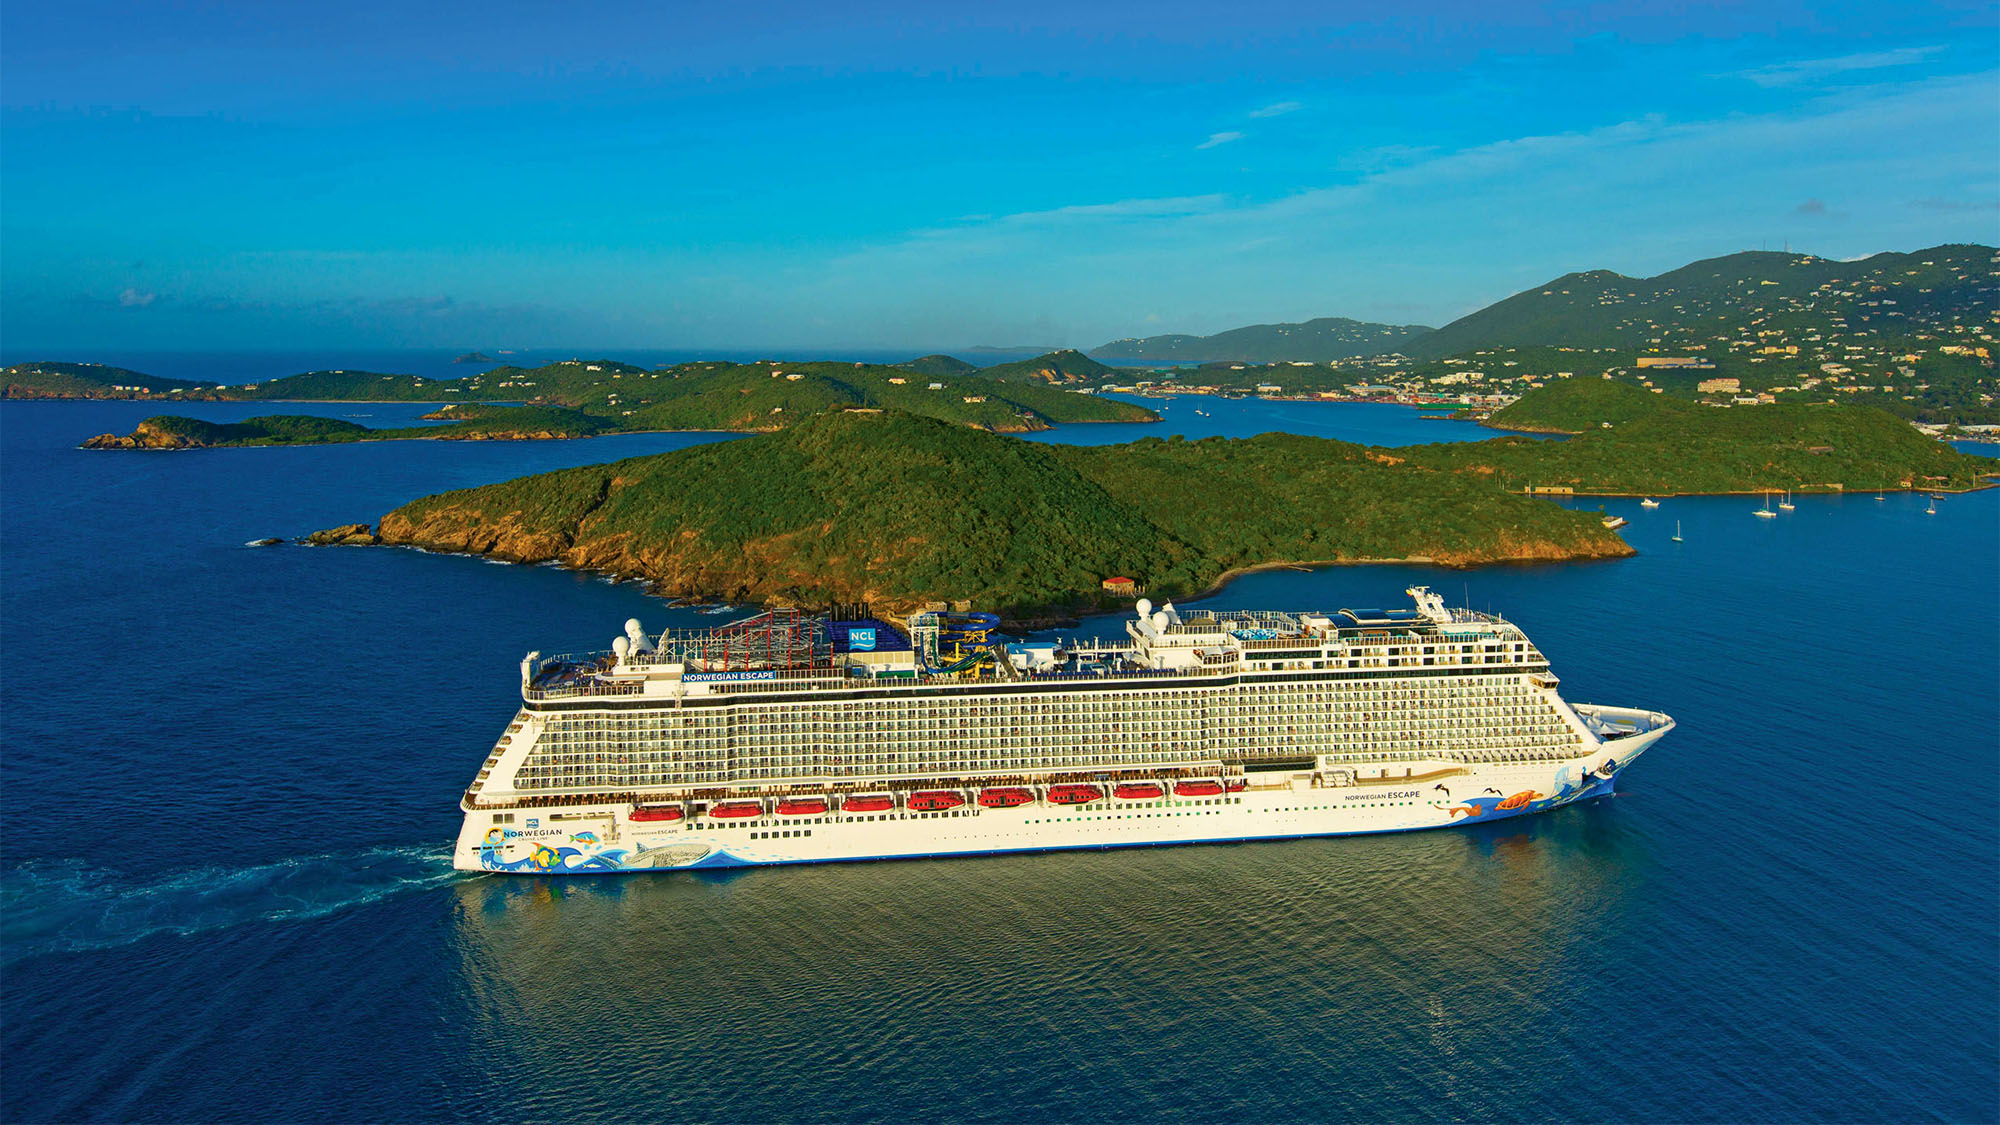 Cruise Ship Schedules Cruises Cruise Deals Amp Prices Cruise Line River Cruise Travel Weekly